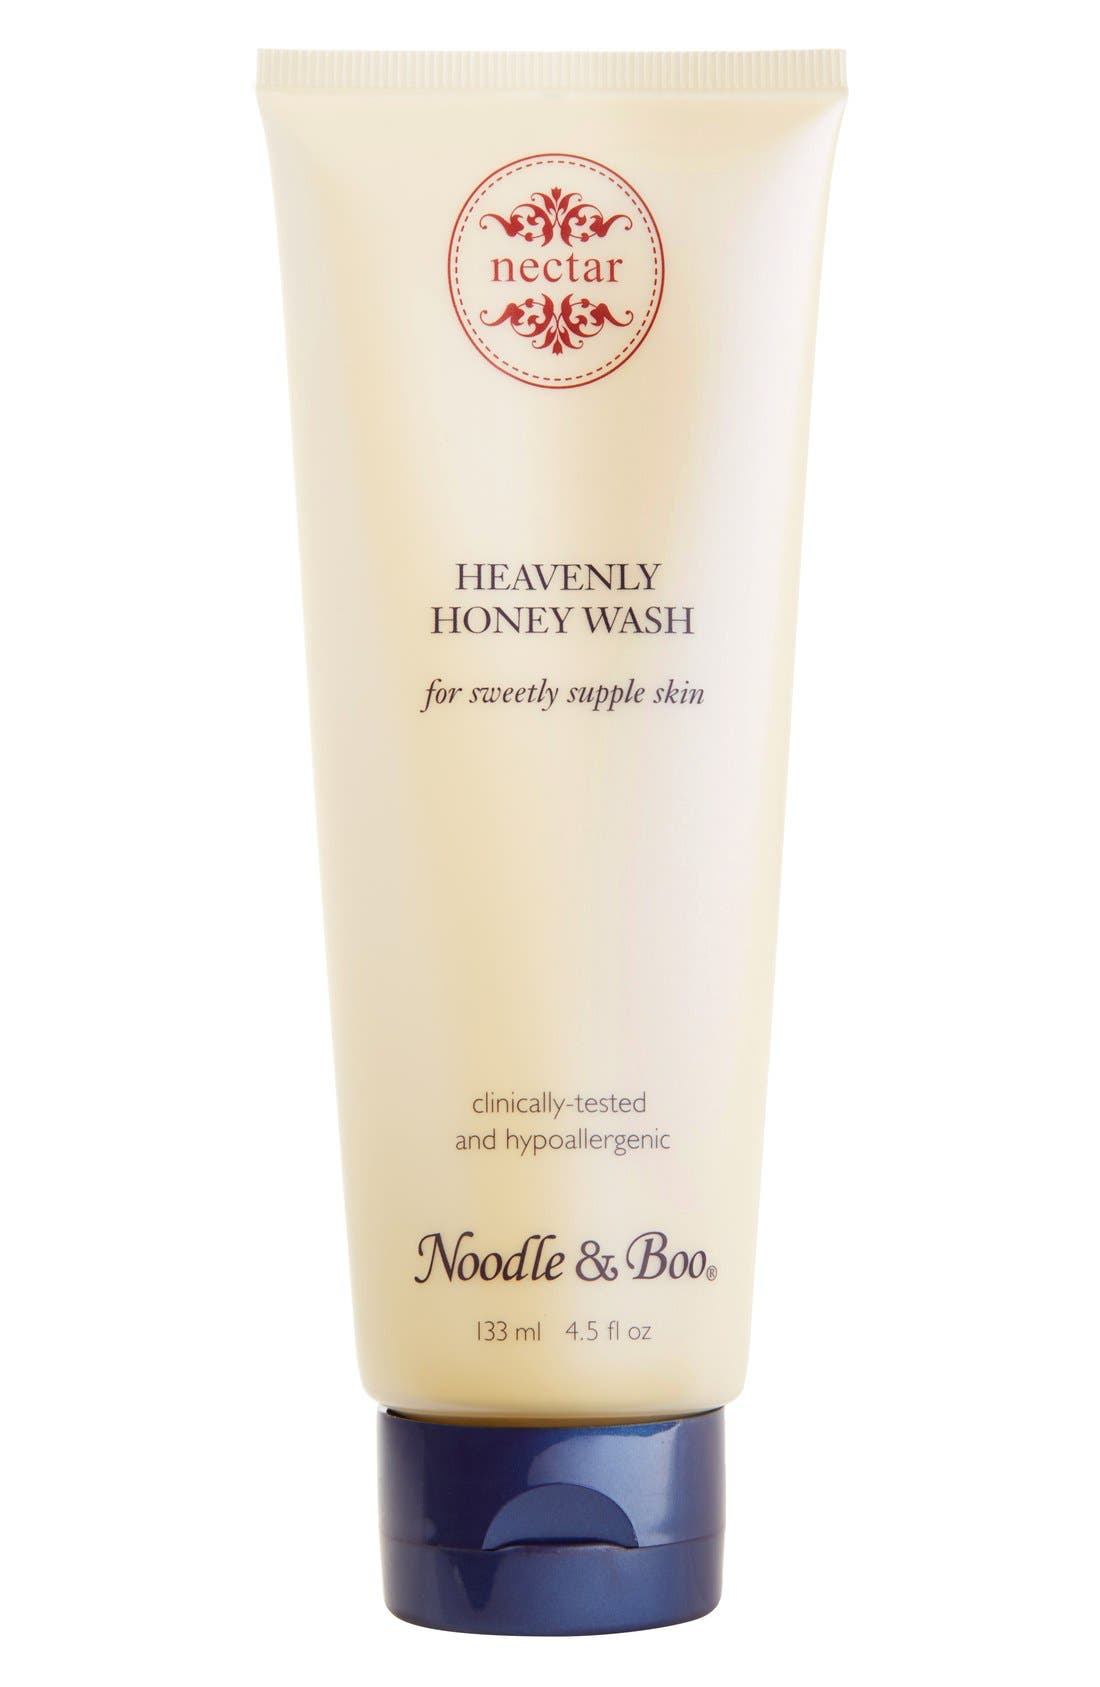 Noodle & Boo nectar - Heavenly Honey Body Wash